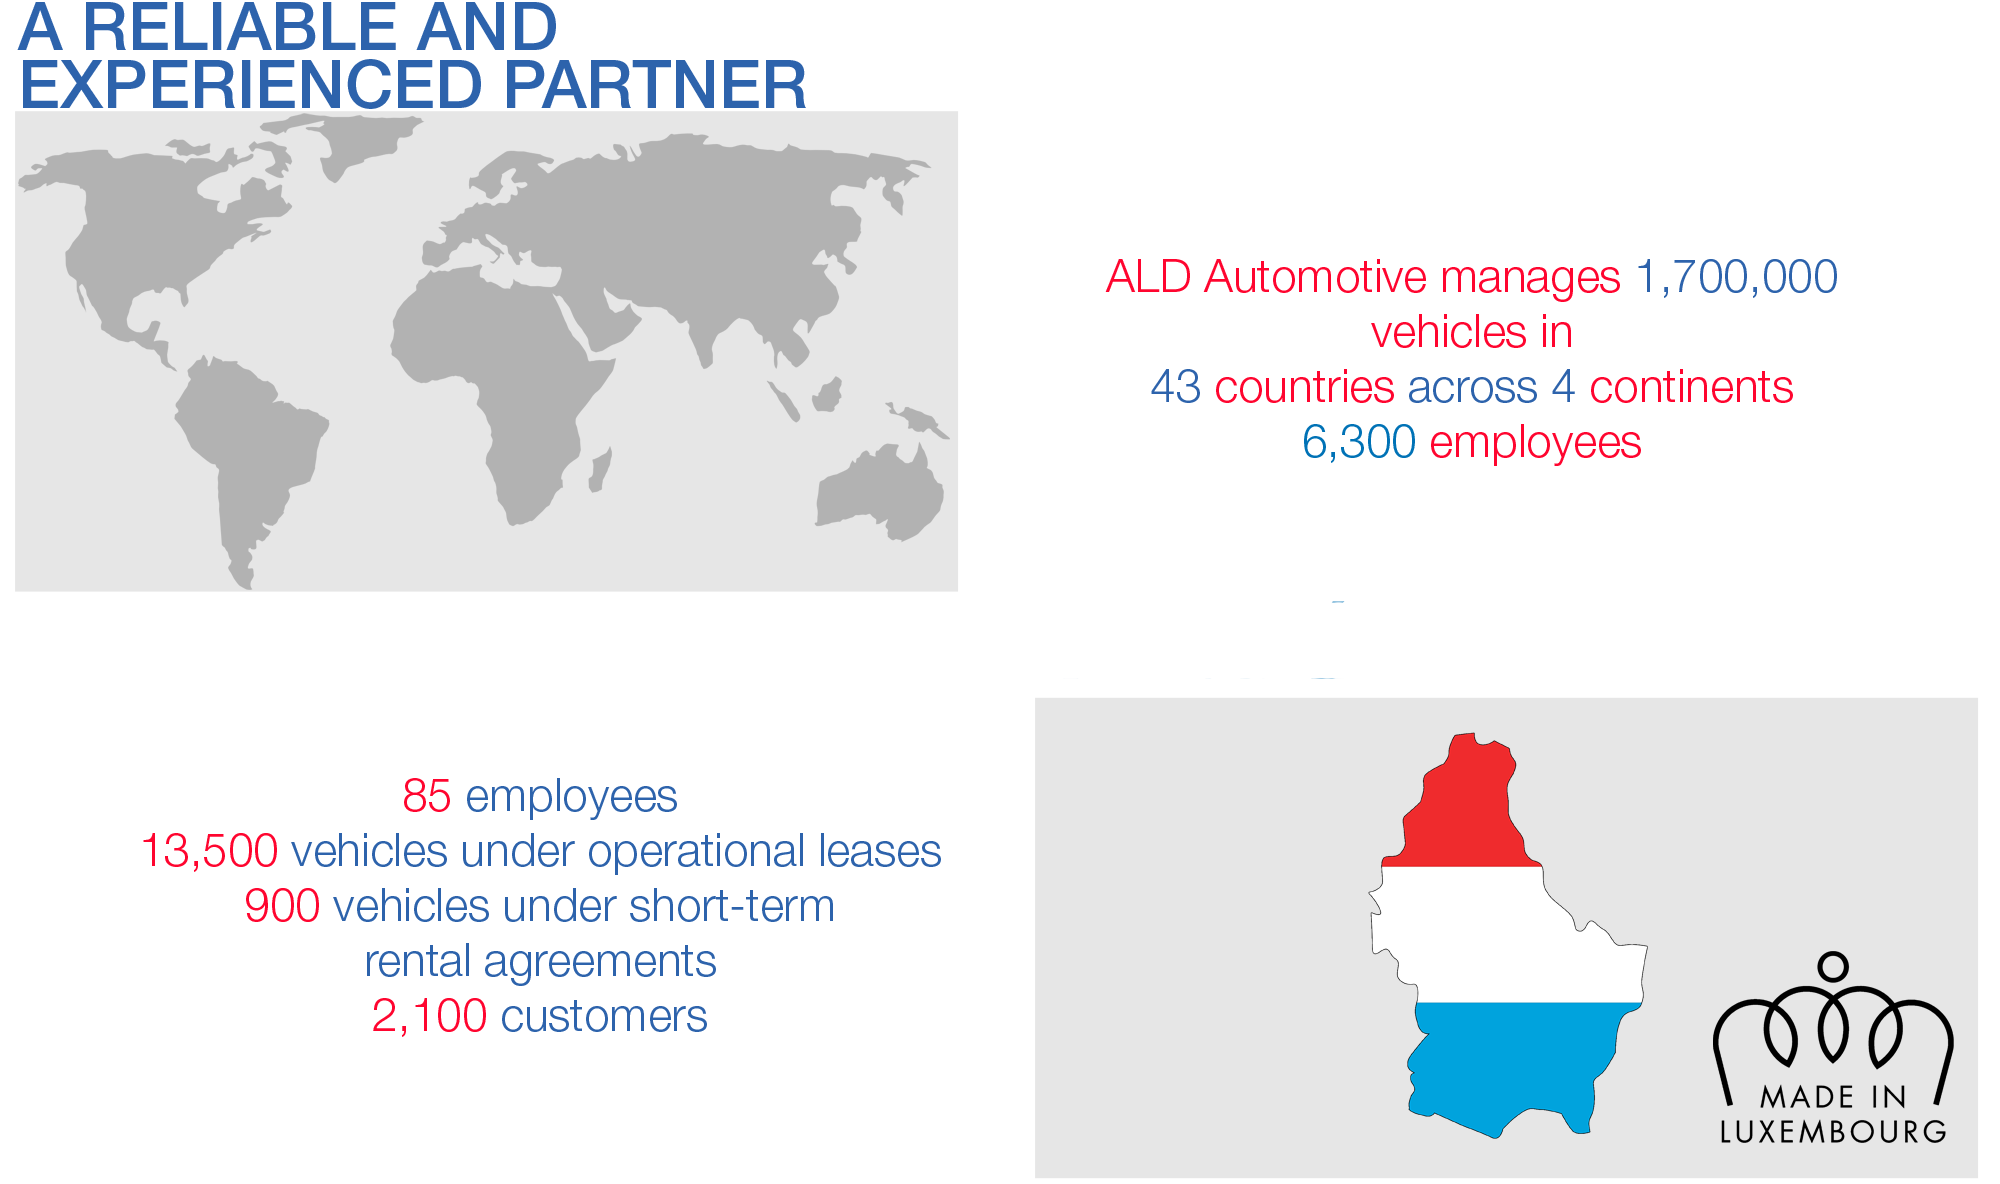 ALD Automotive luxembourg EN 16.08.19